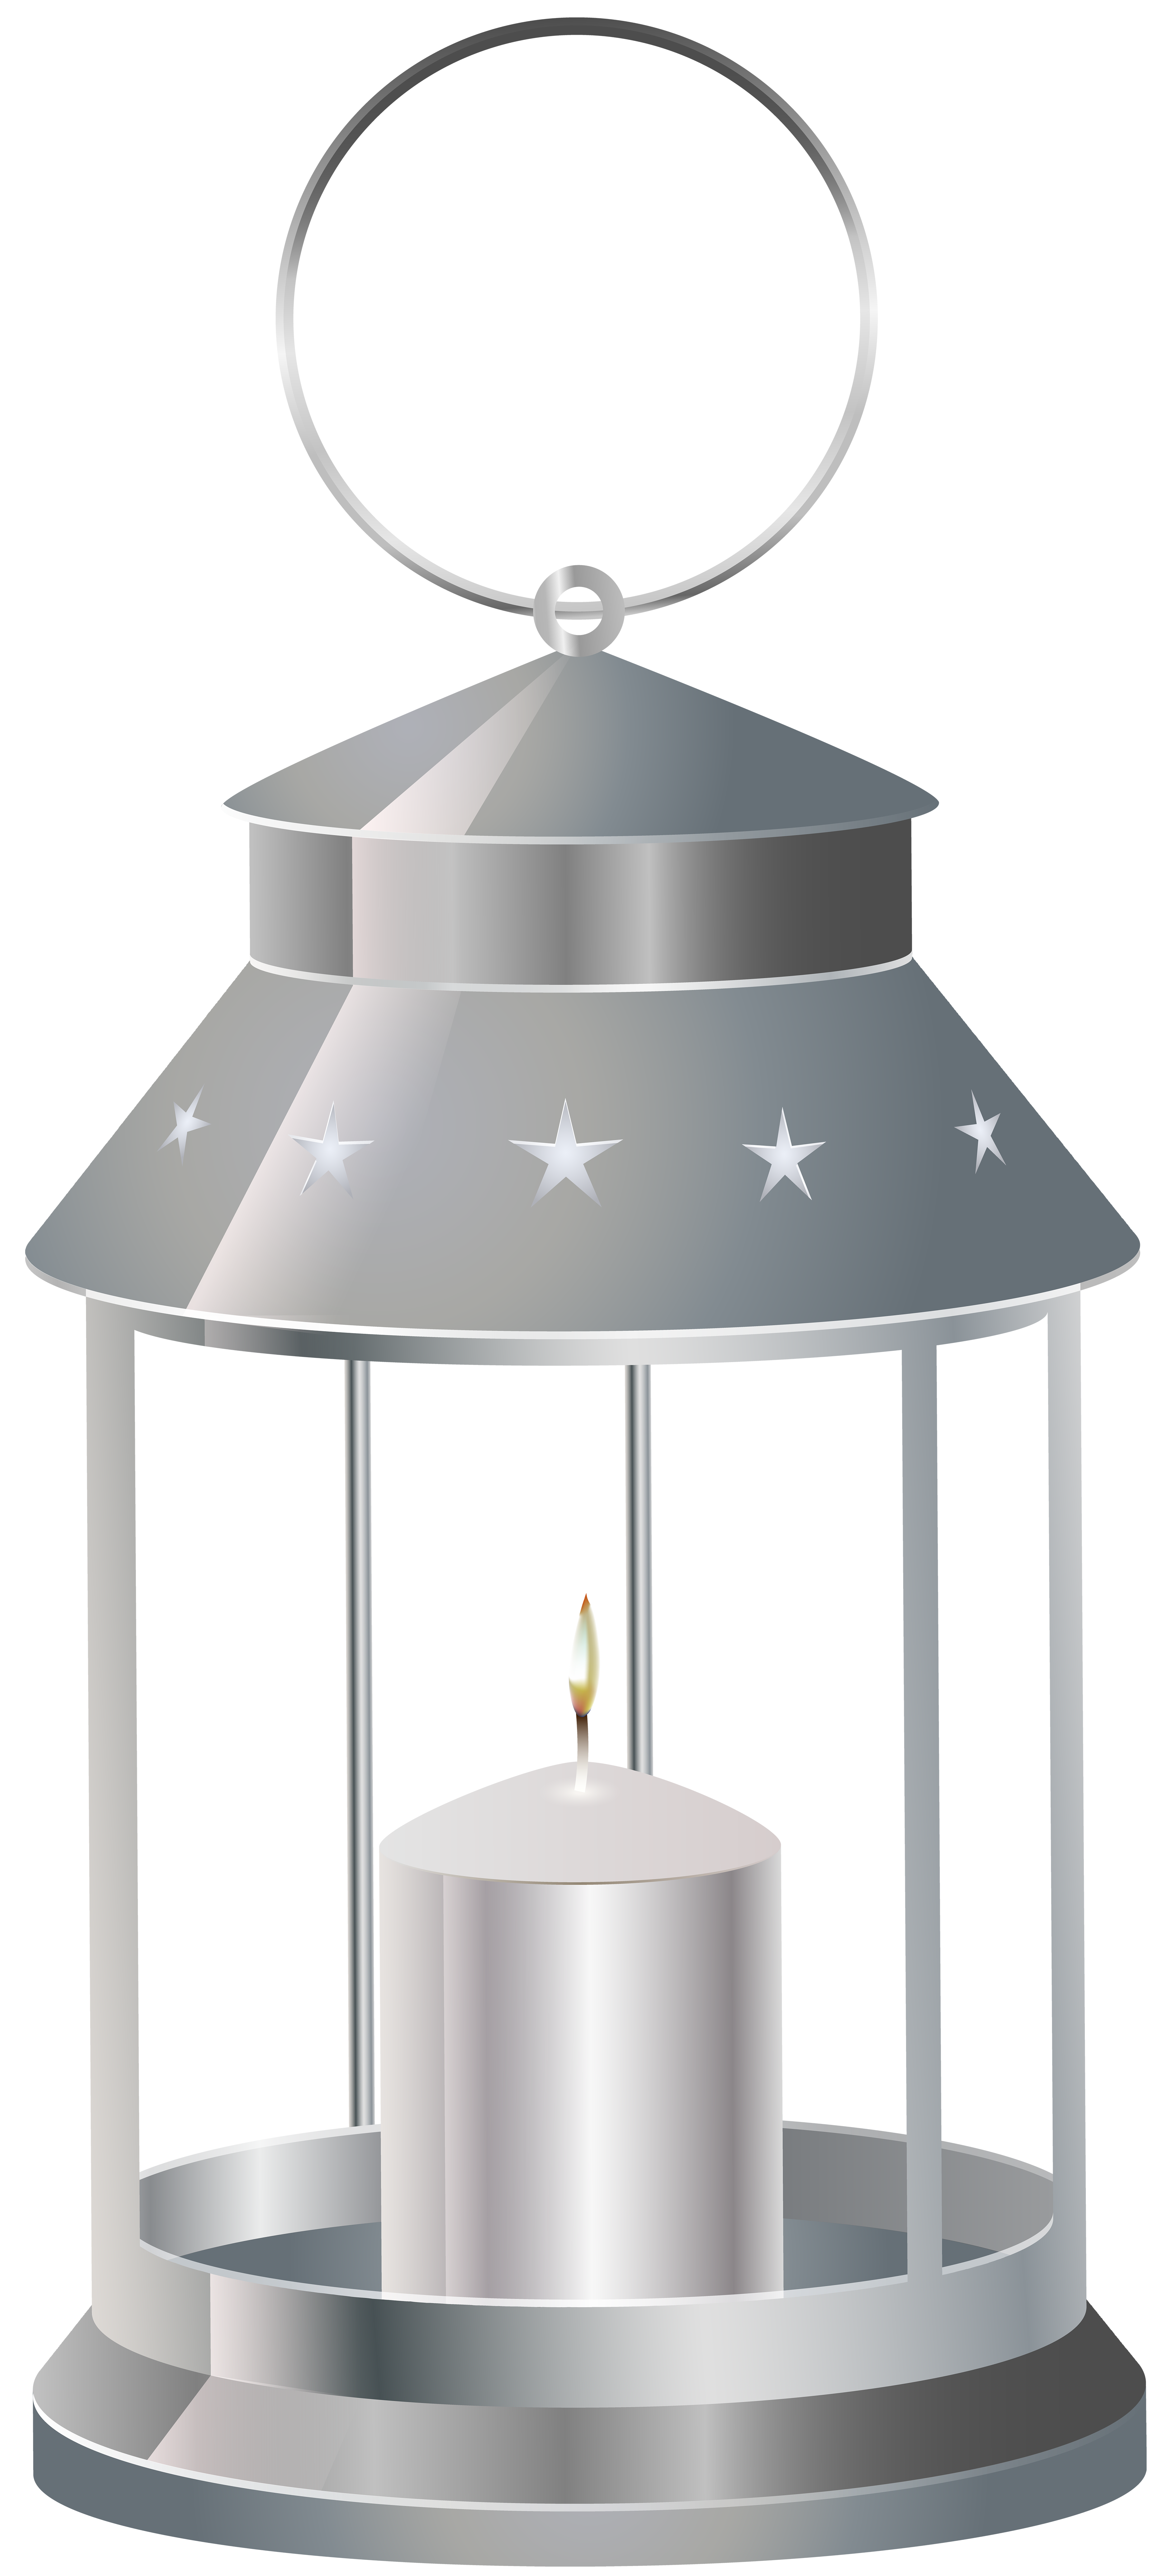 svg Silver with candle png. Lantern clipart.